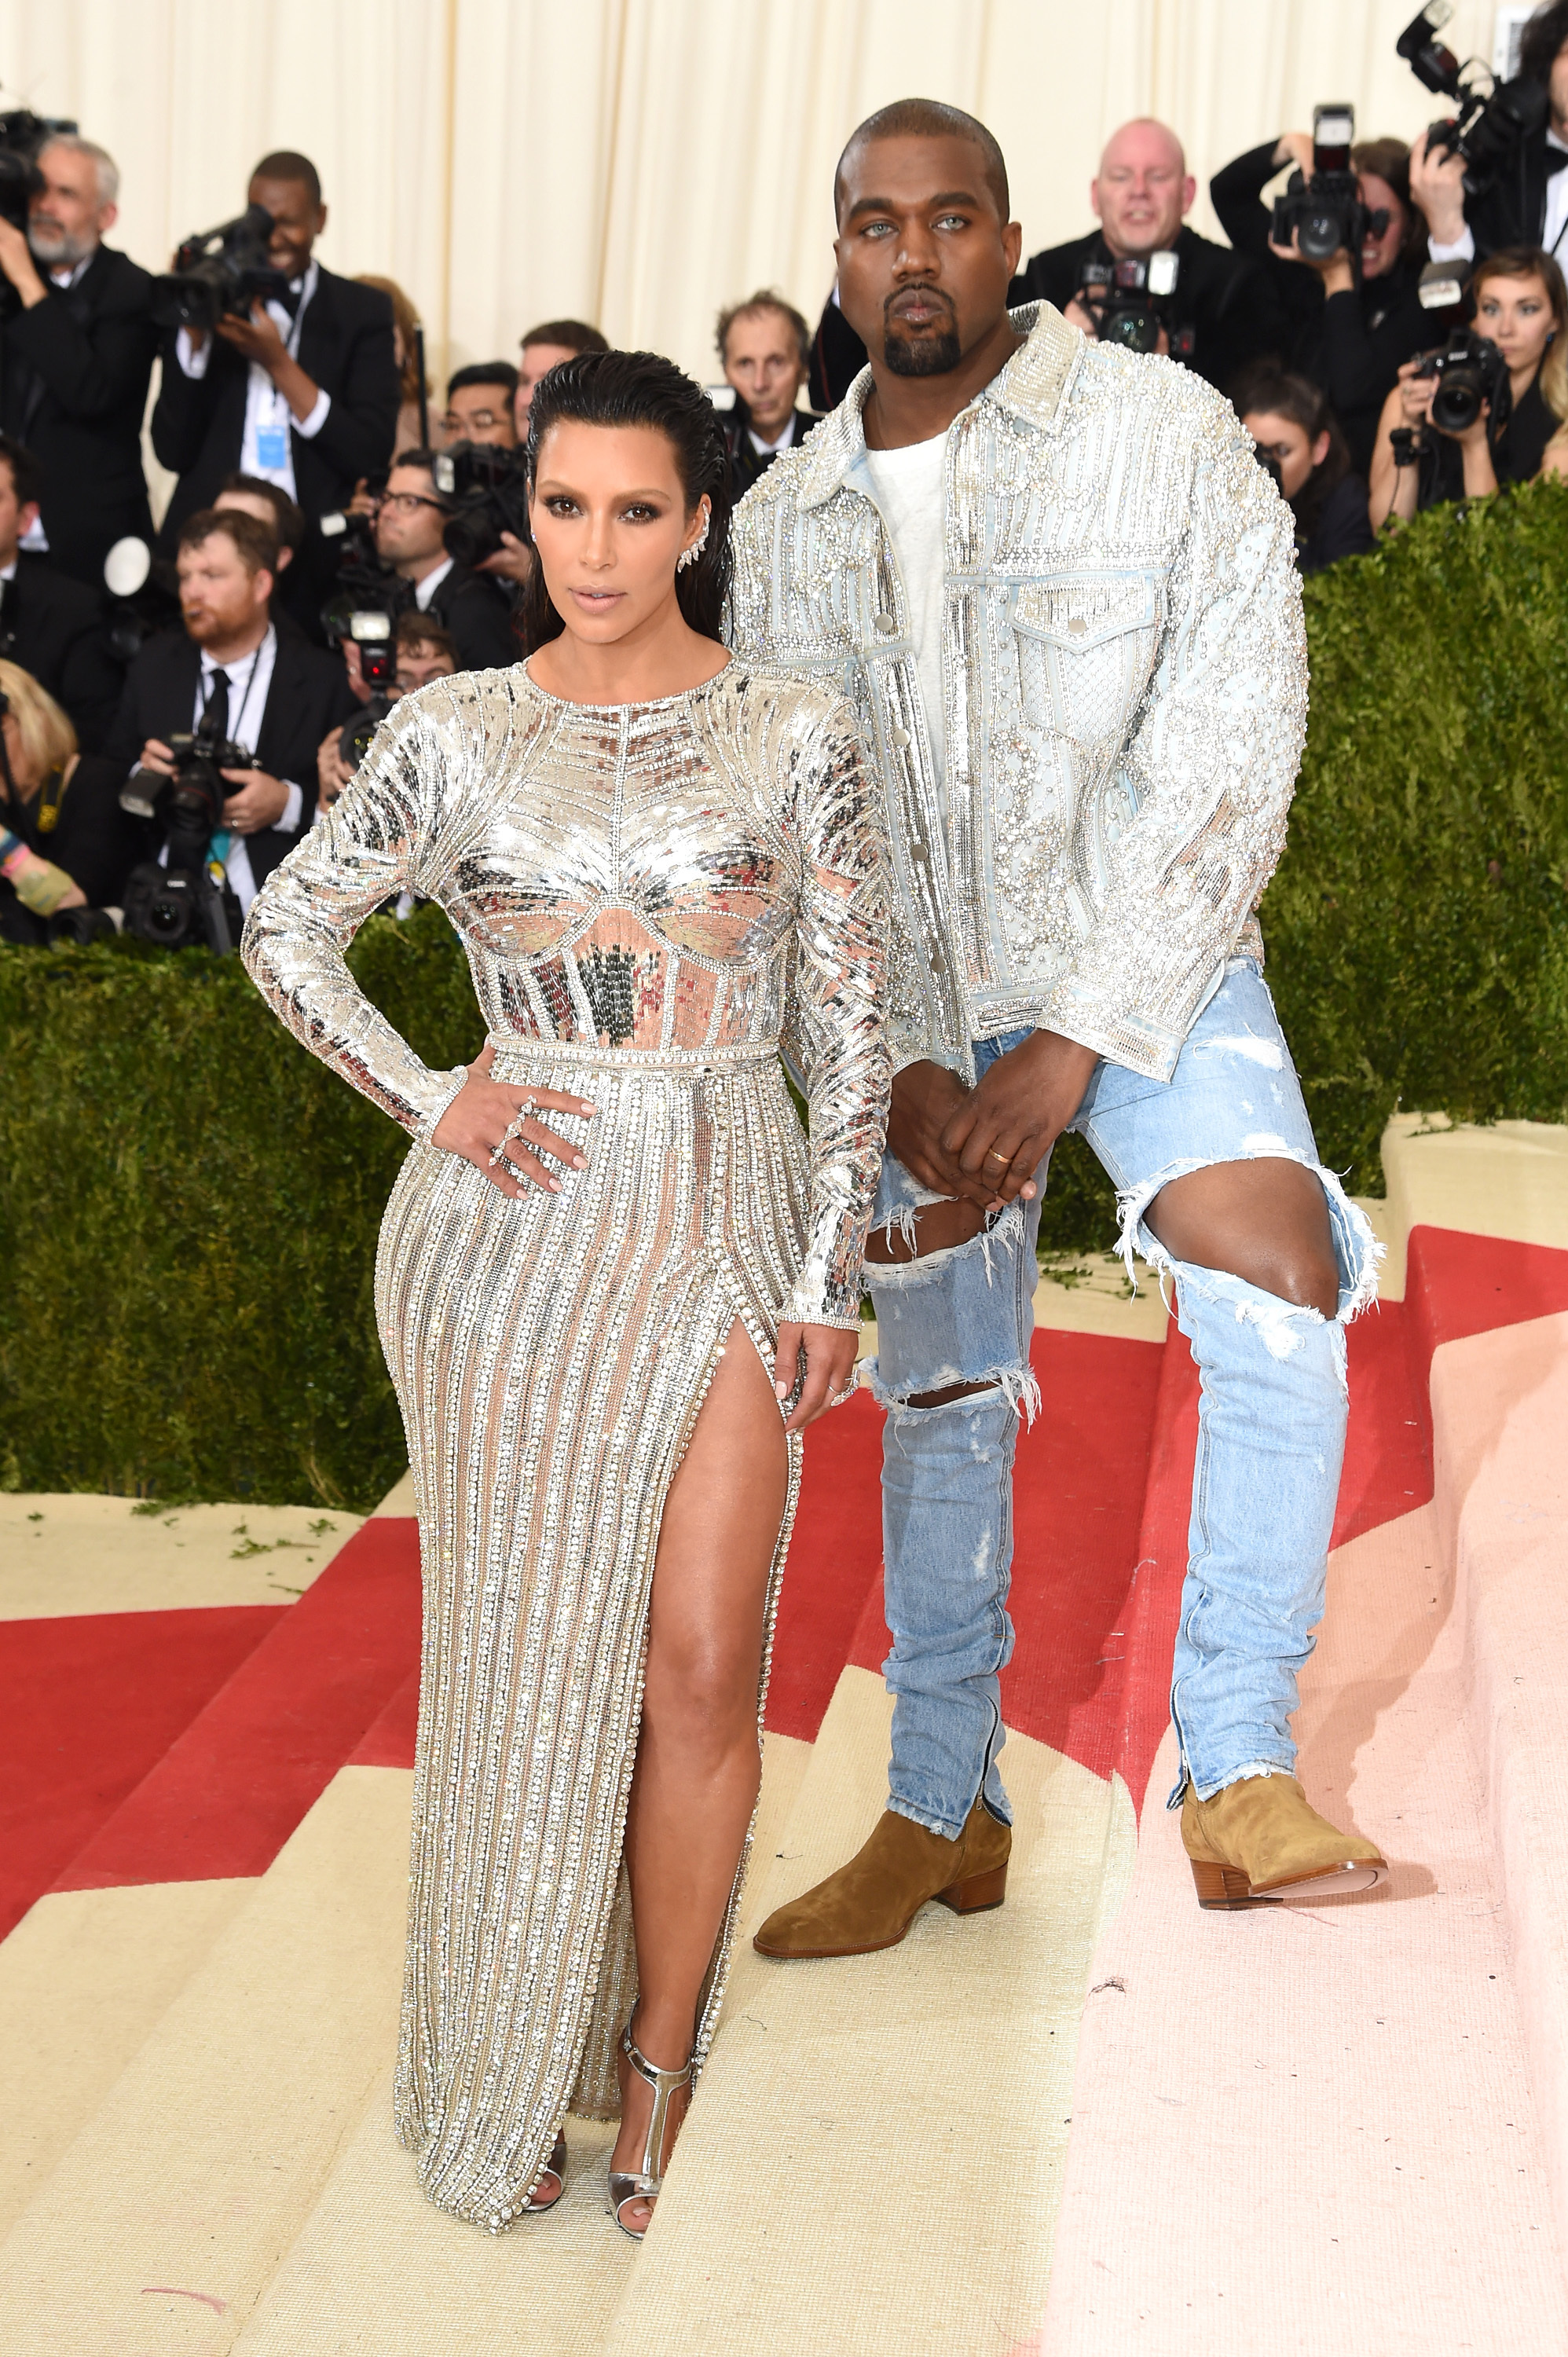 Kanye West thanks Kim Kardashian for cooking Father's Day dinner